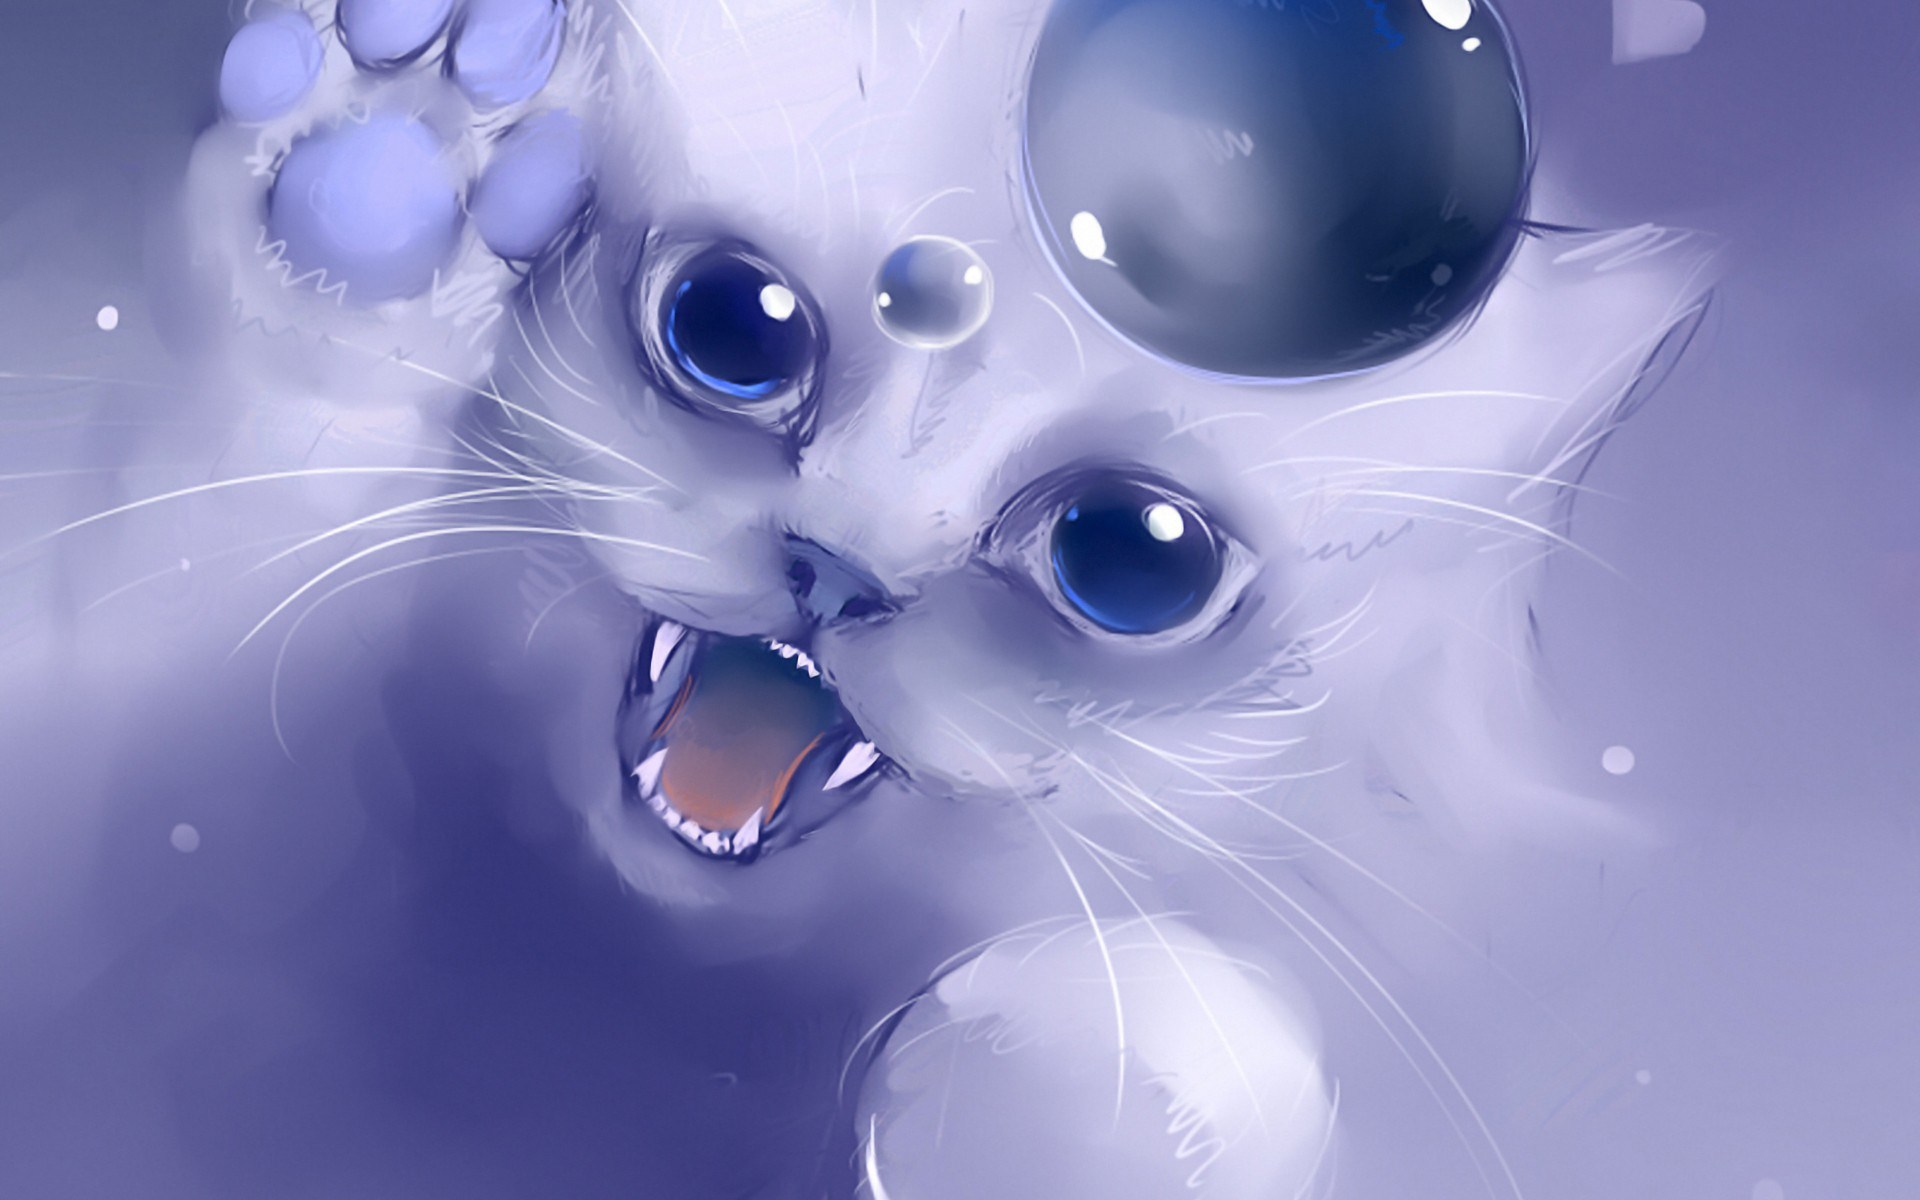 artwork manga anime wallpaper kitty cat bubble drawing art 1920x1200